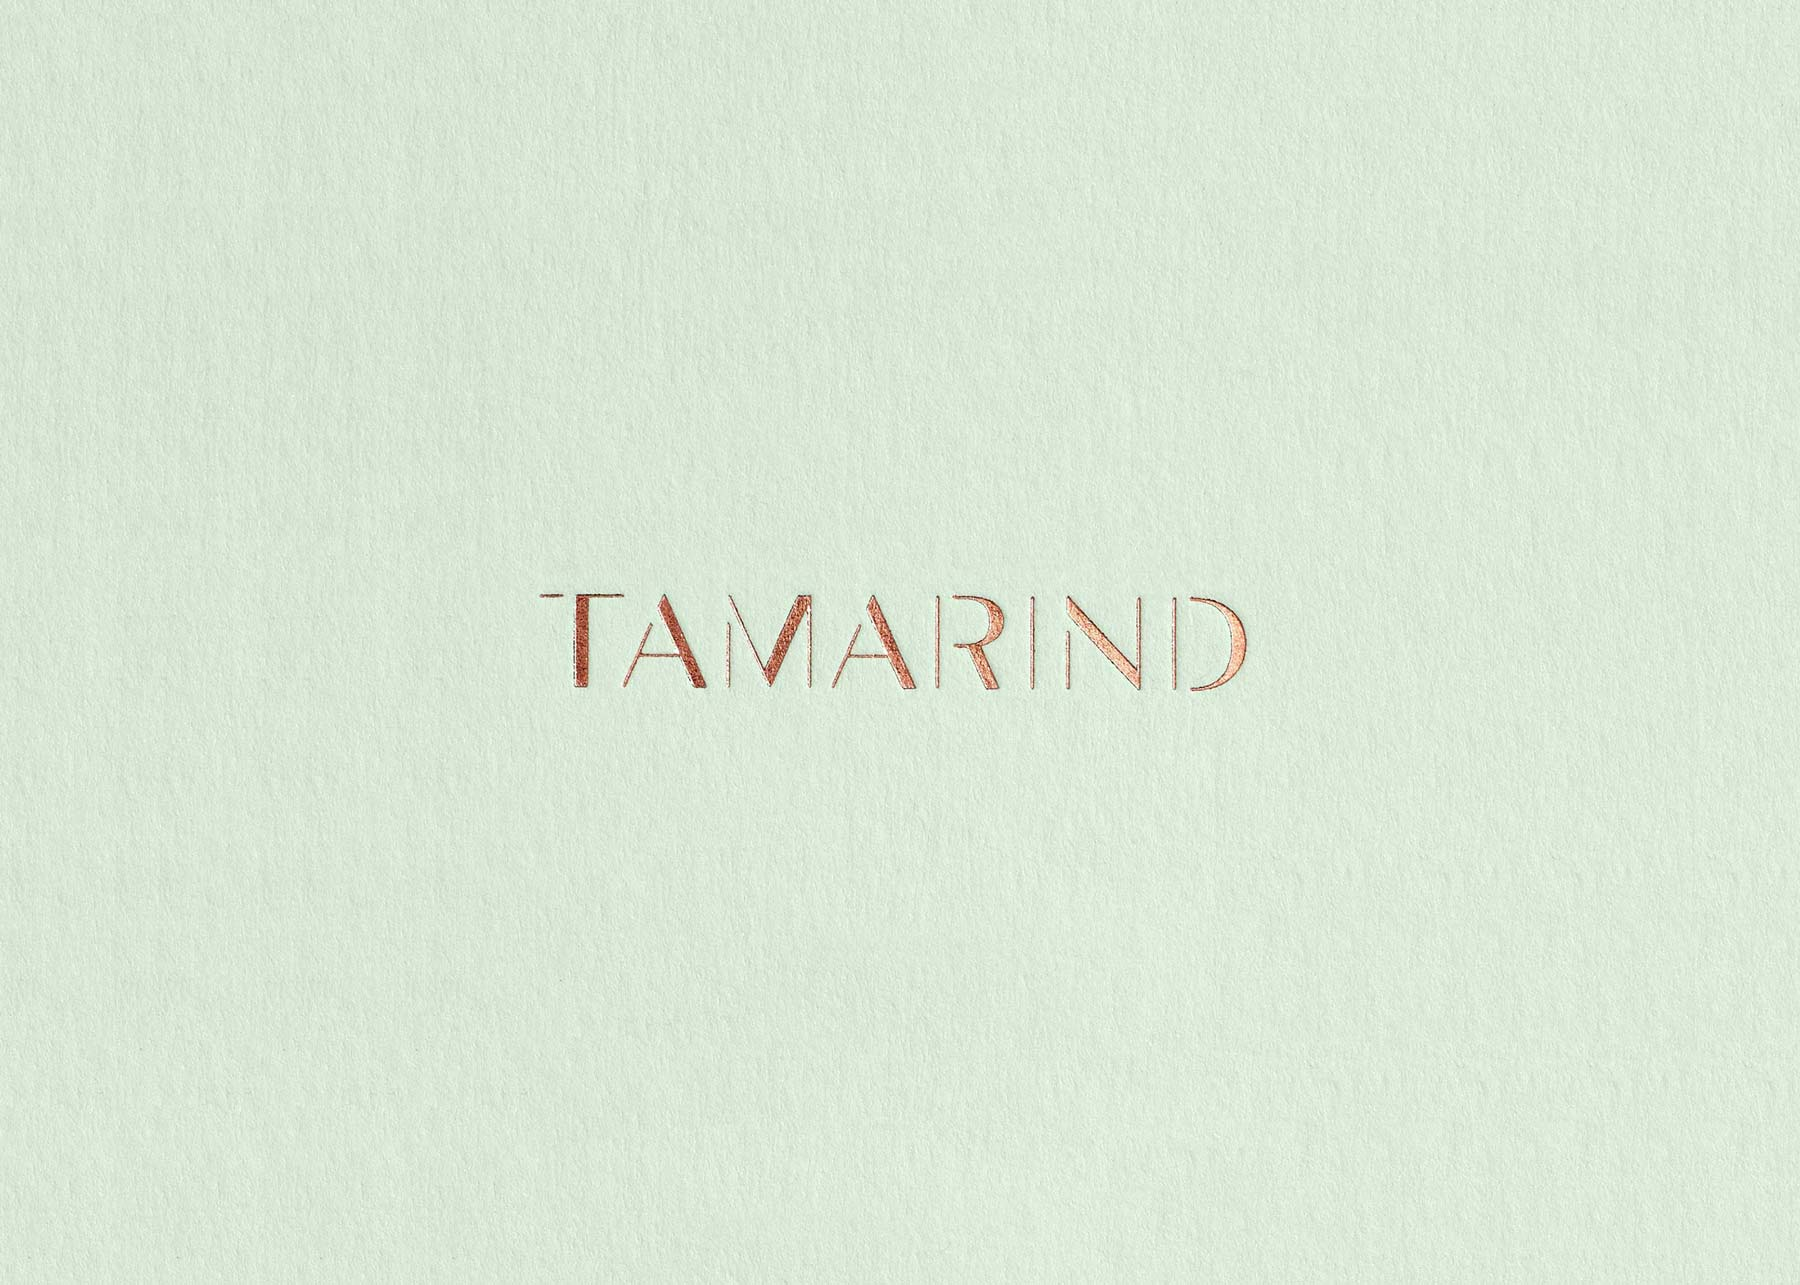 tamarind of mayfair poetic visual identity by dutchscot